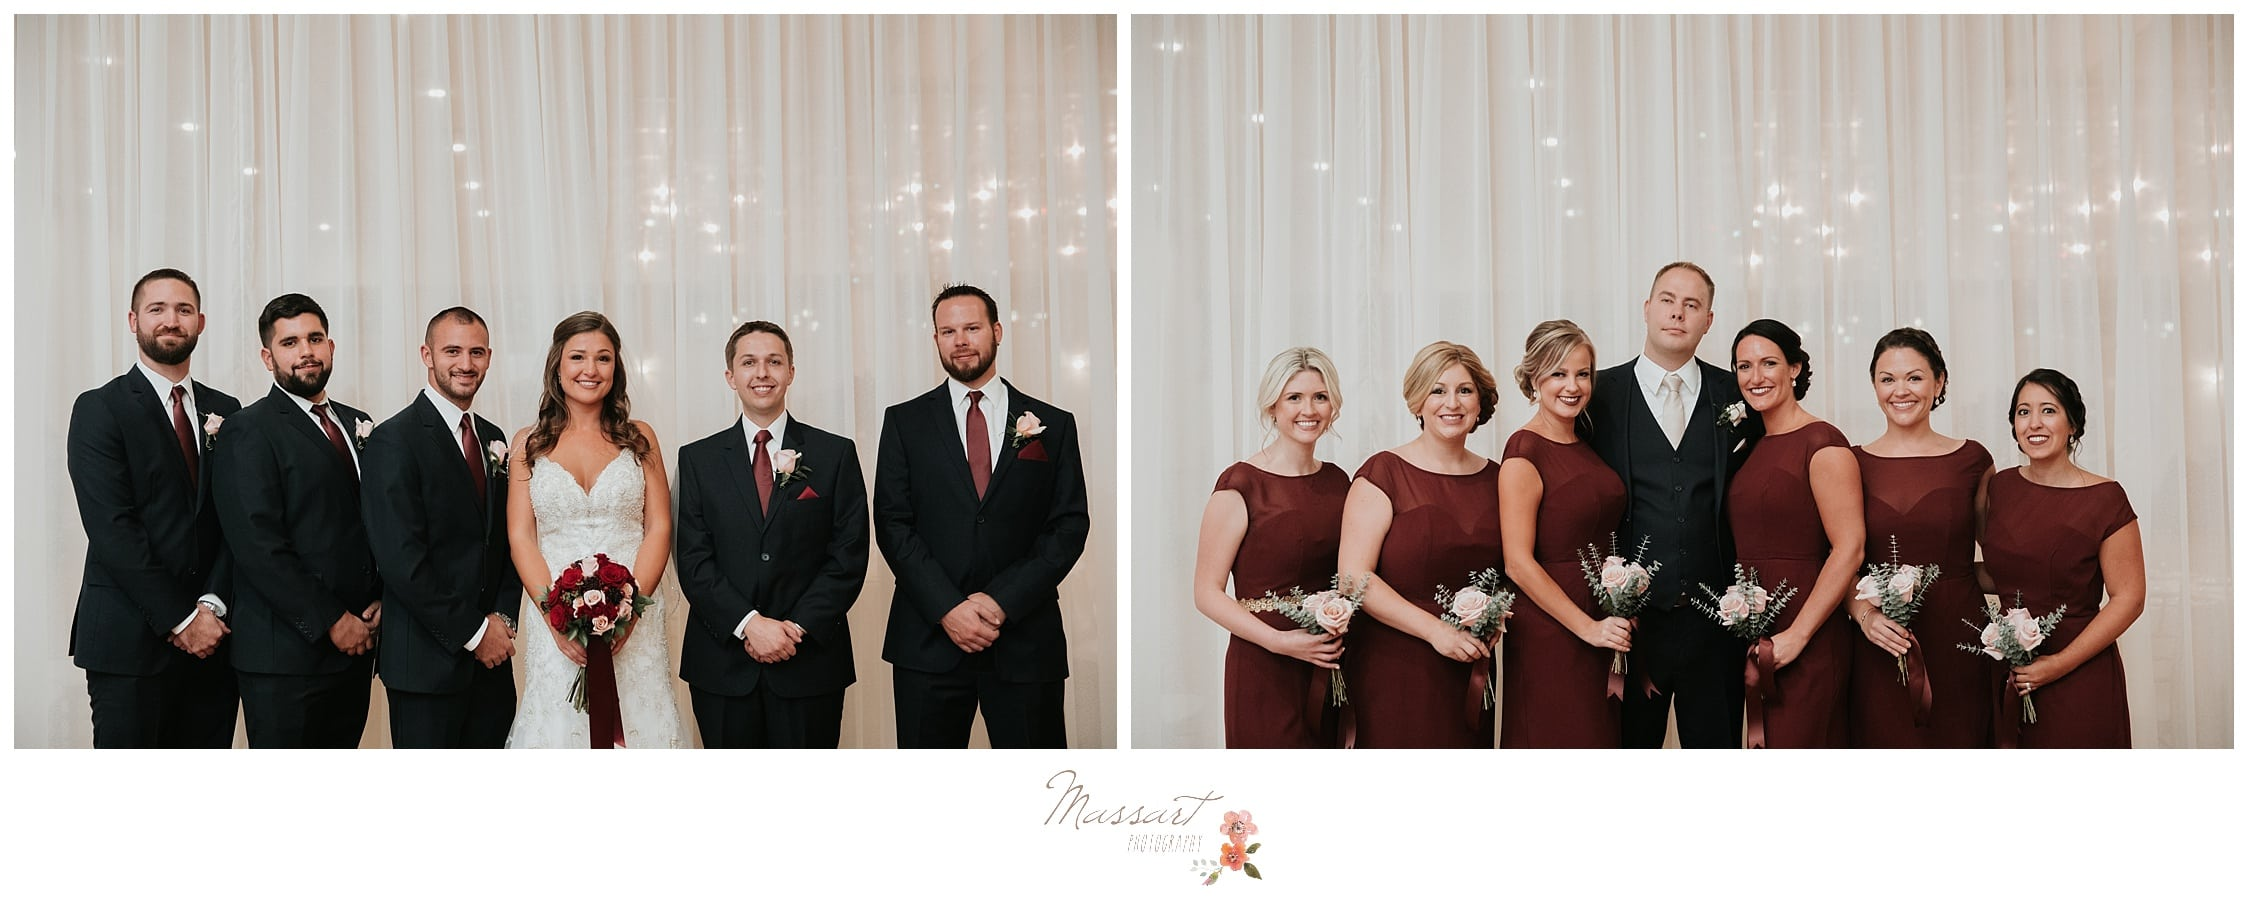 Formal portraits of the bride with the groomsmen and the groom with the bridesmaids photographed by Massart Photography Rhode Island